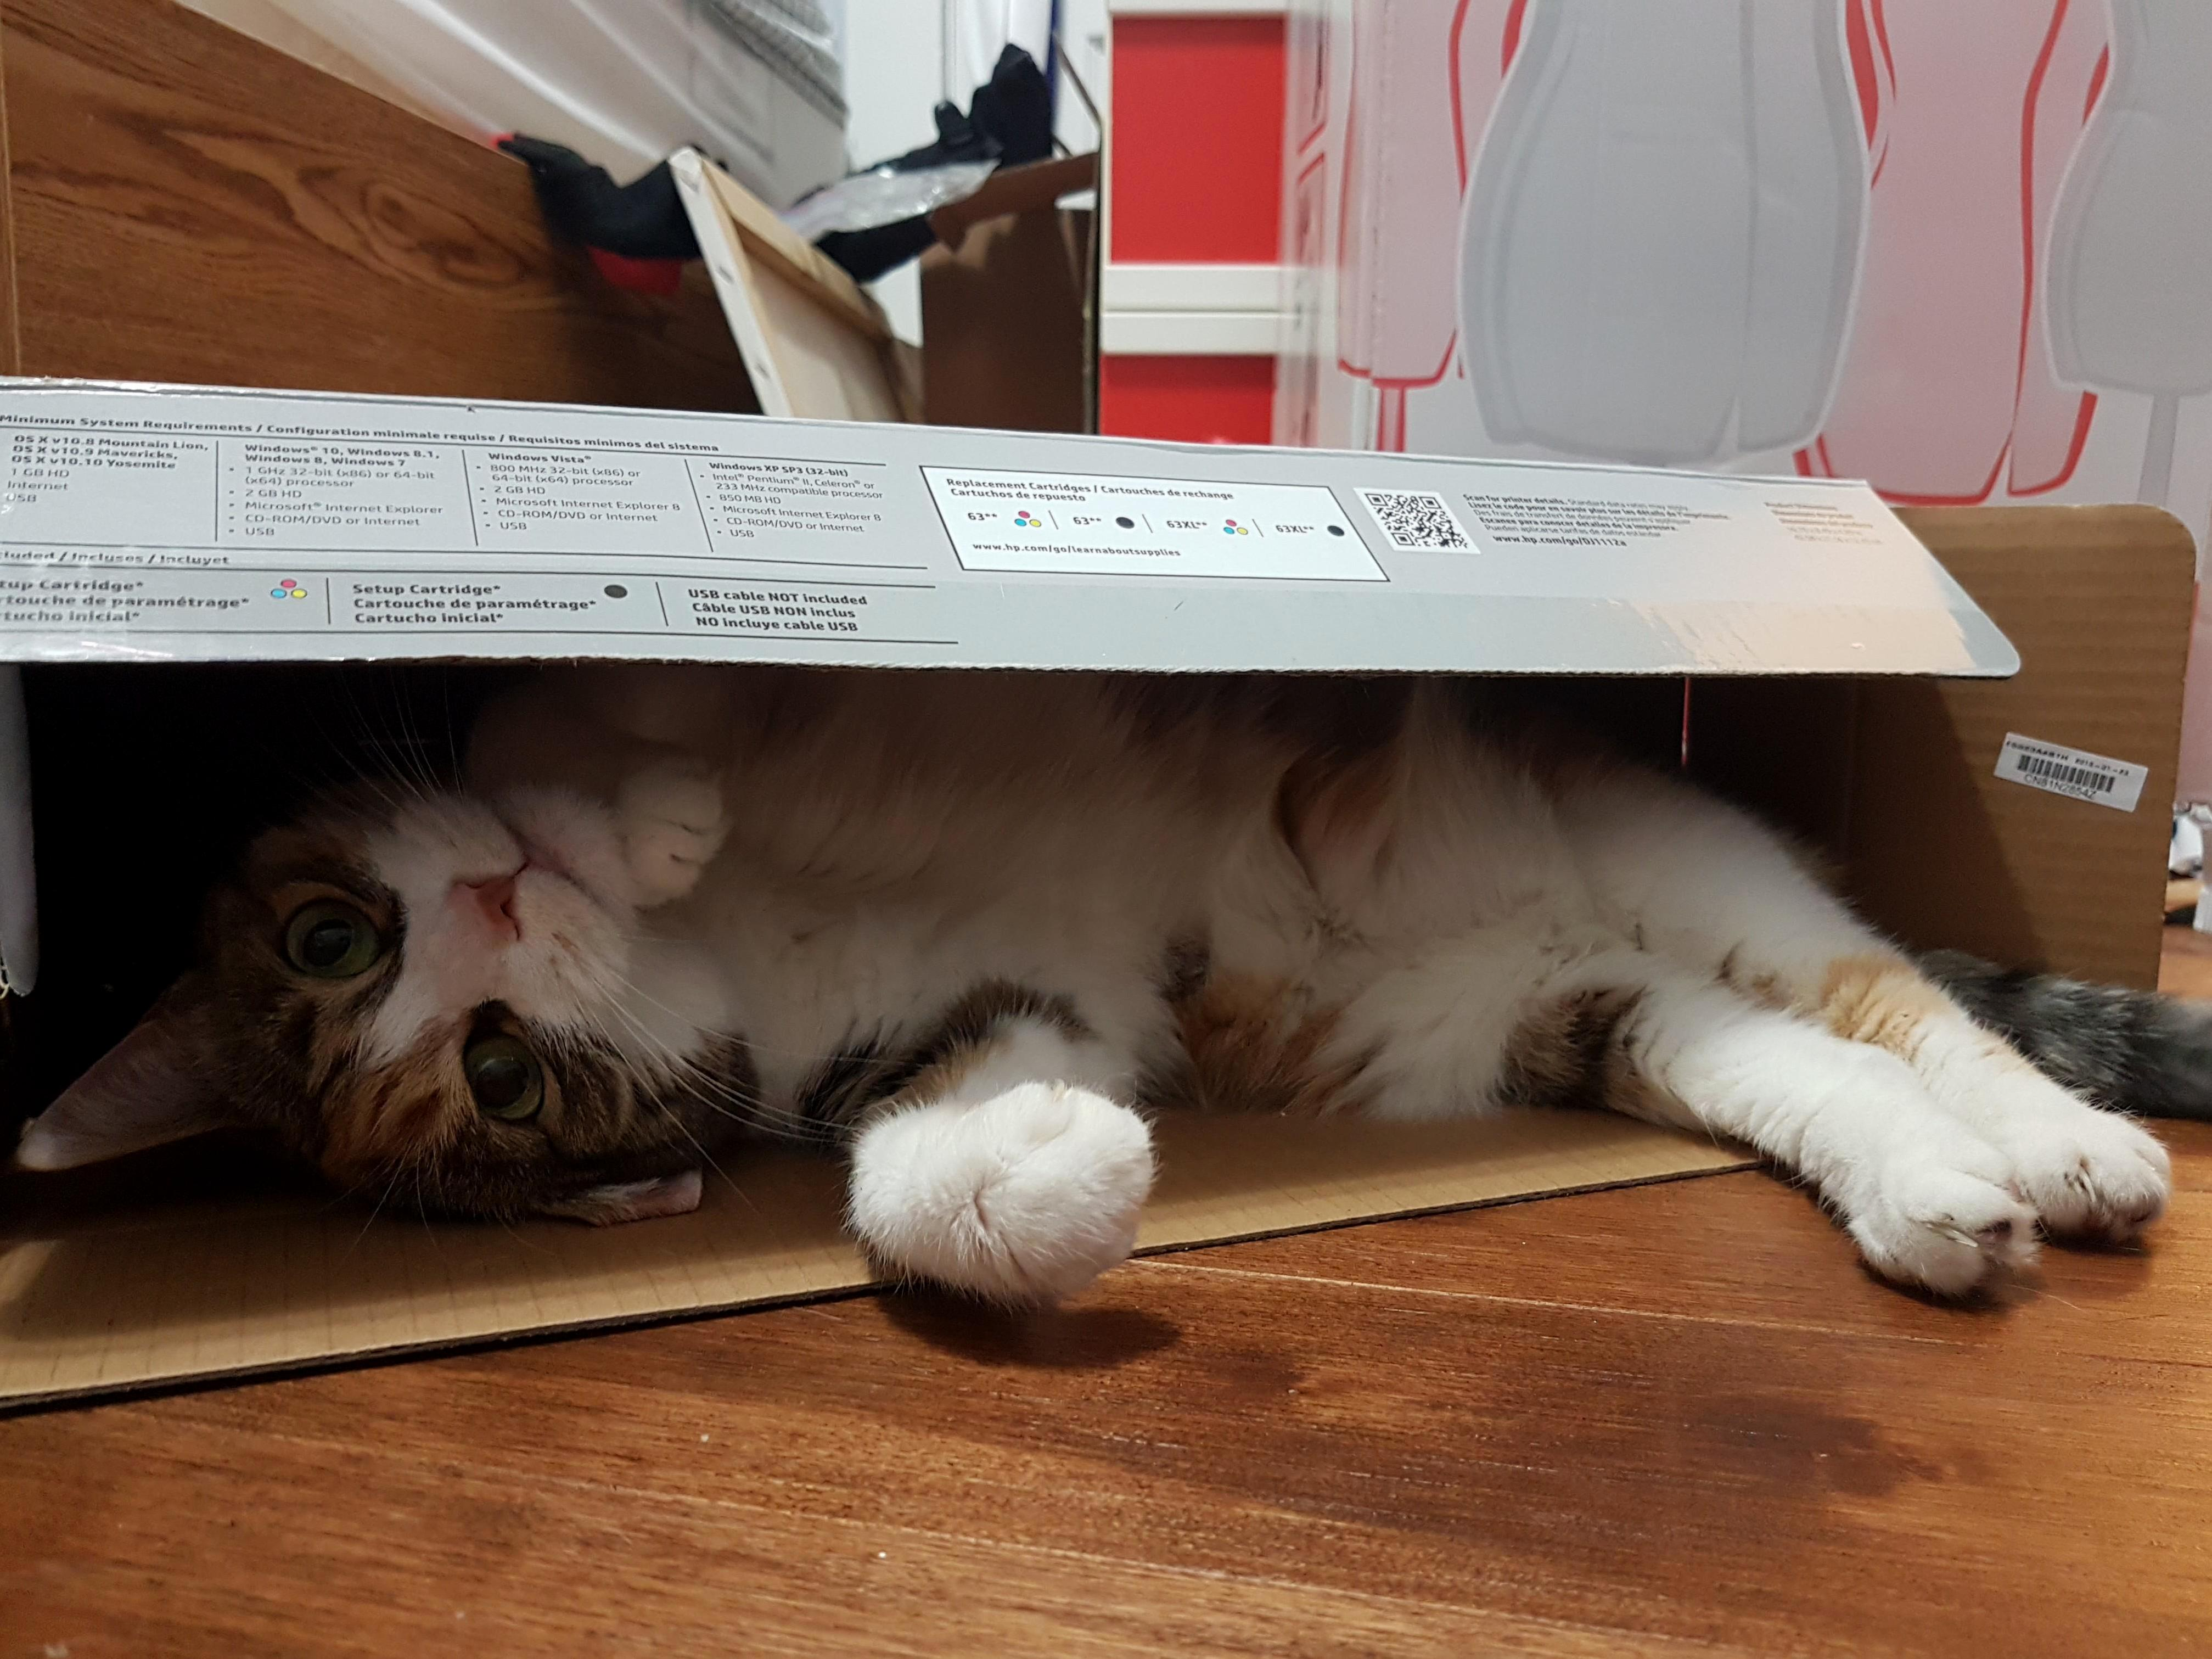 Making herself at home in my new printer box